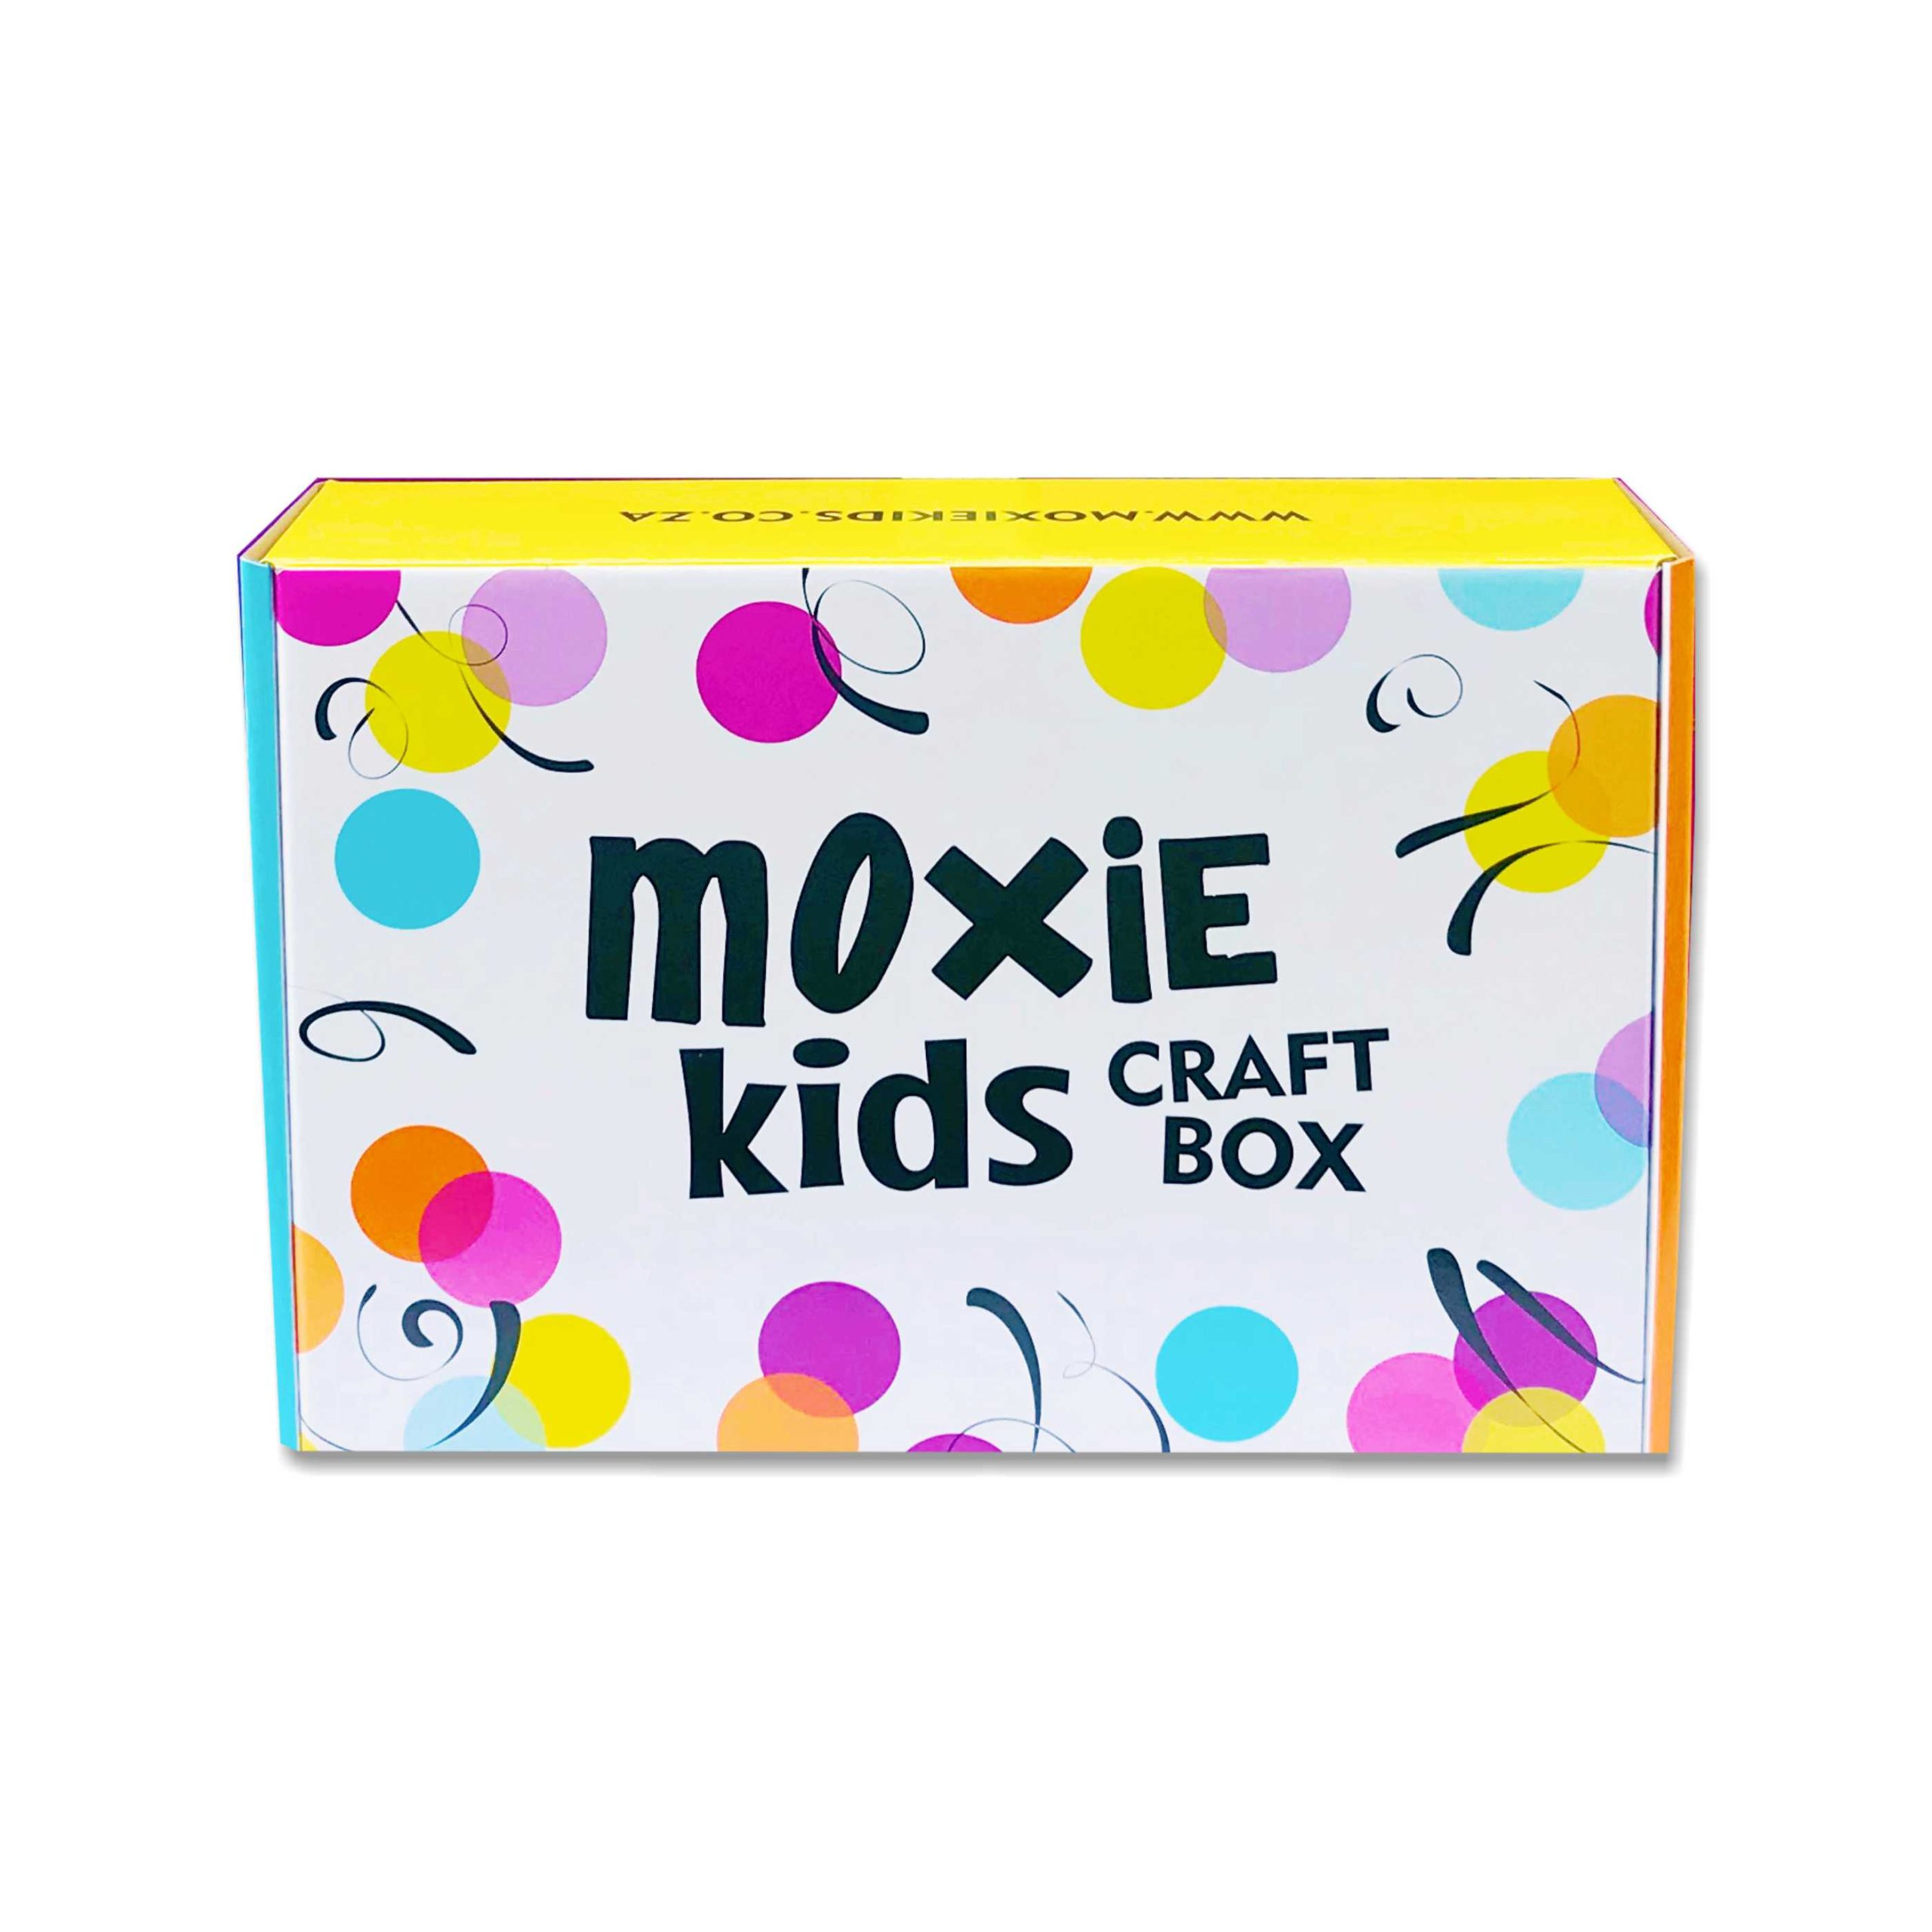 http://www.moxiekids.co.za/wp-content/uploads/2019/11/Month-to-Month-1--scaled.jpg